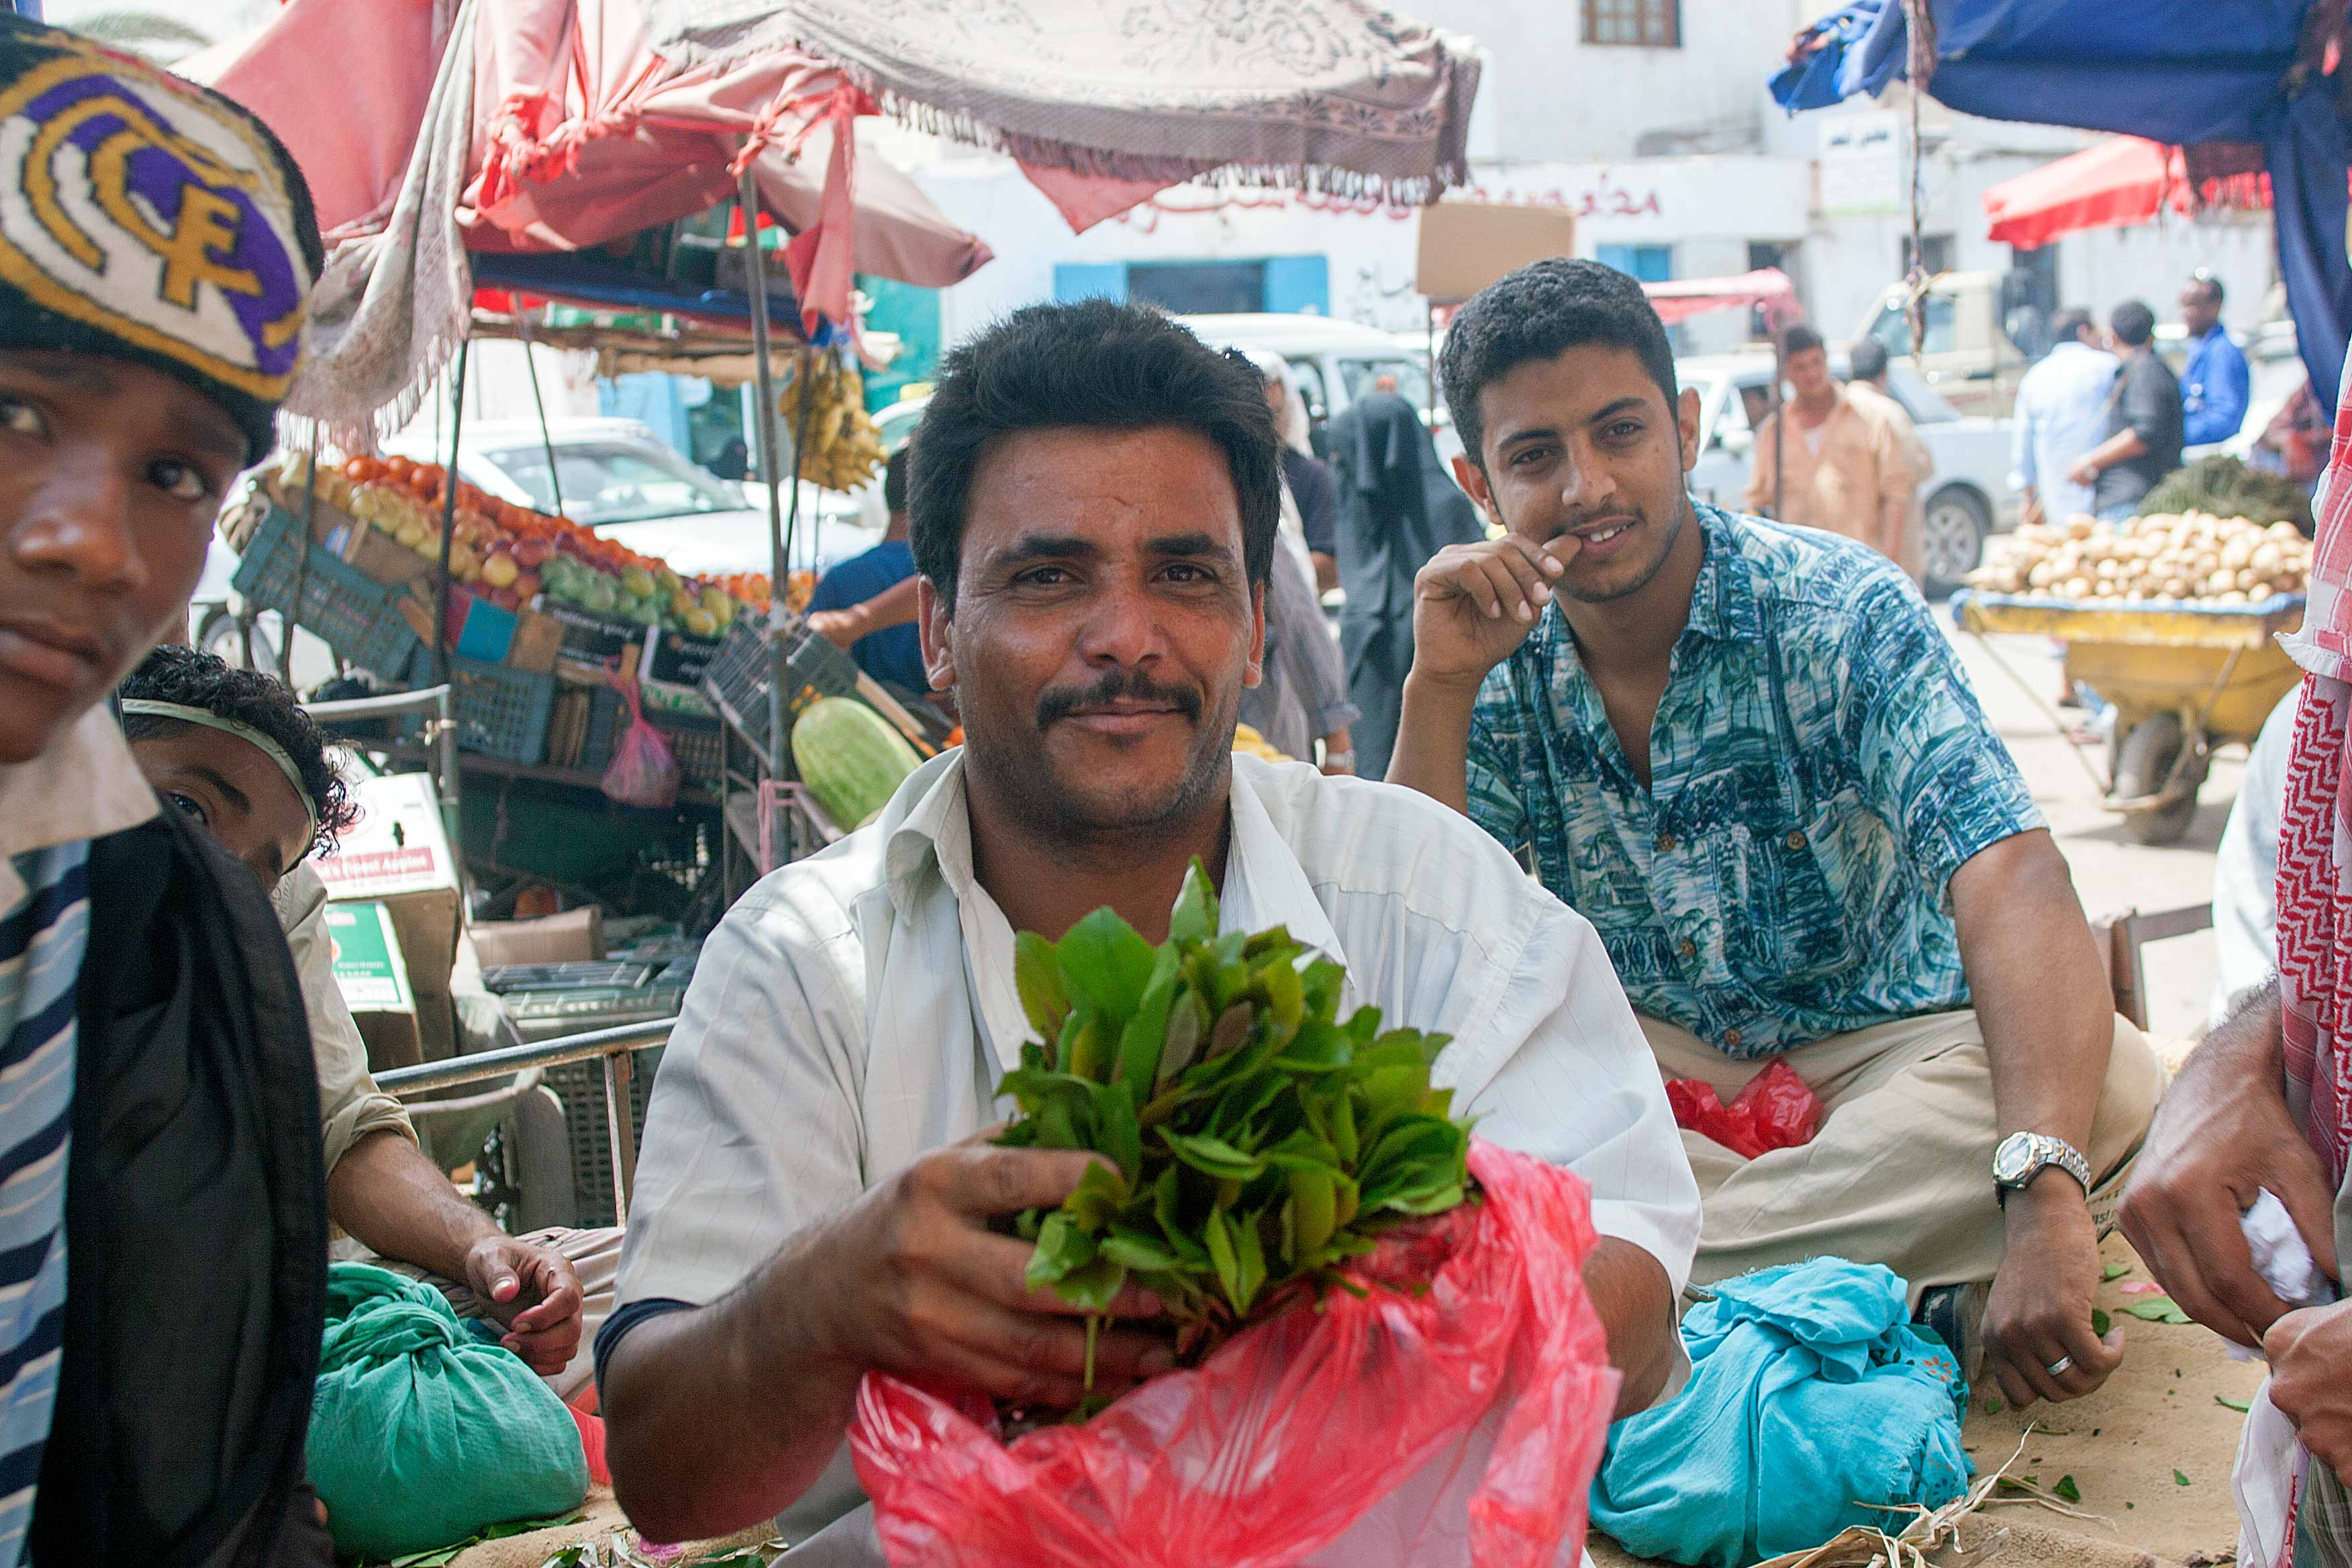 Khat vendor in Aden, Yemen (2011)